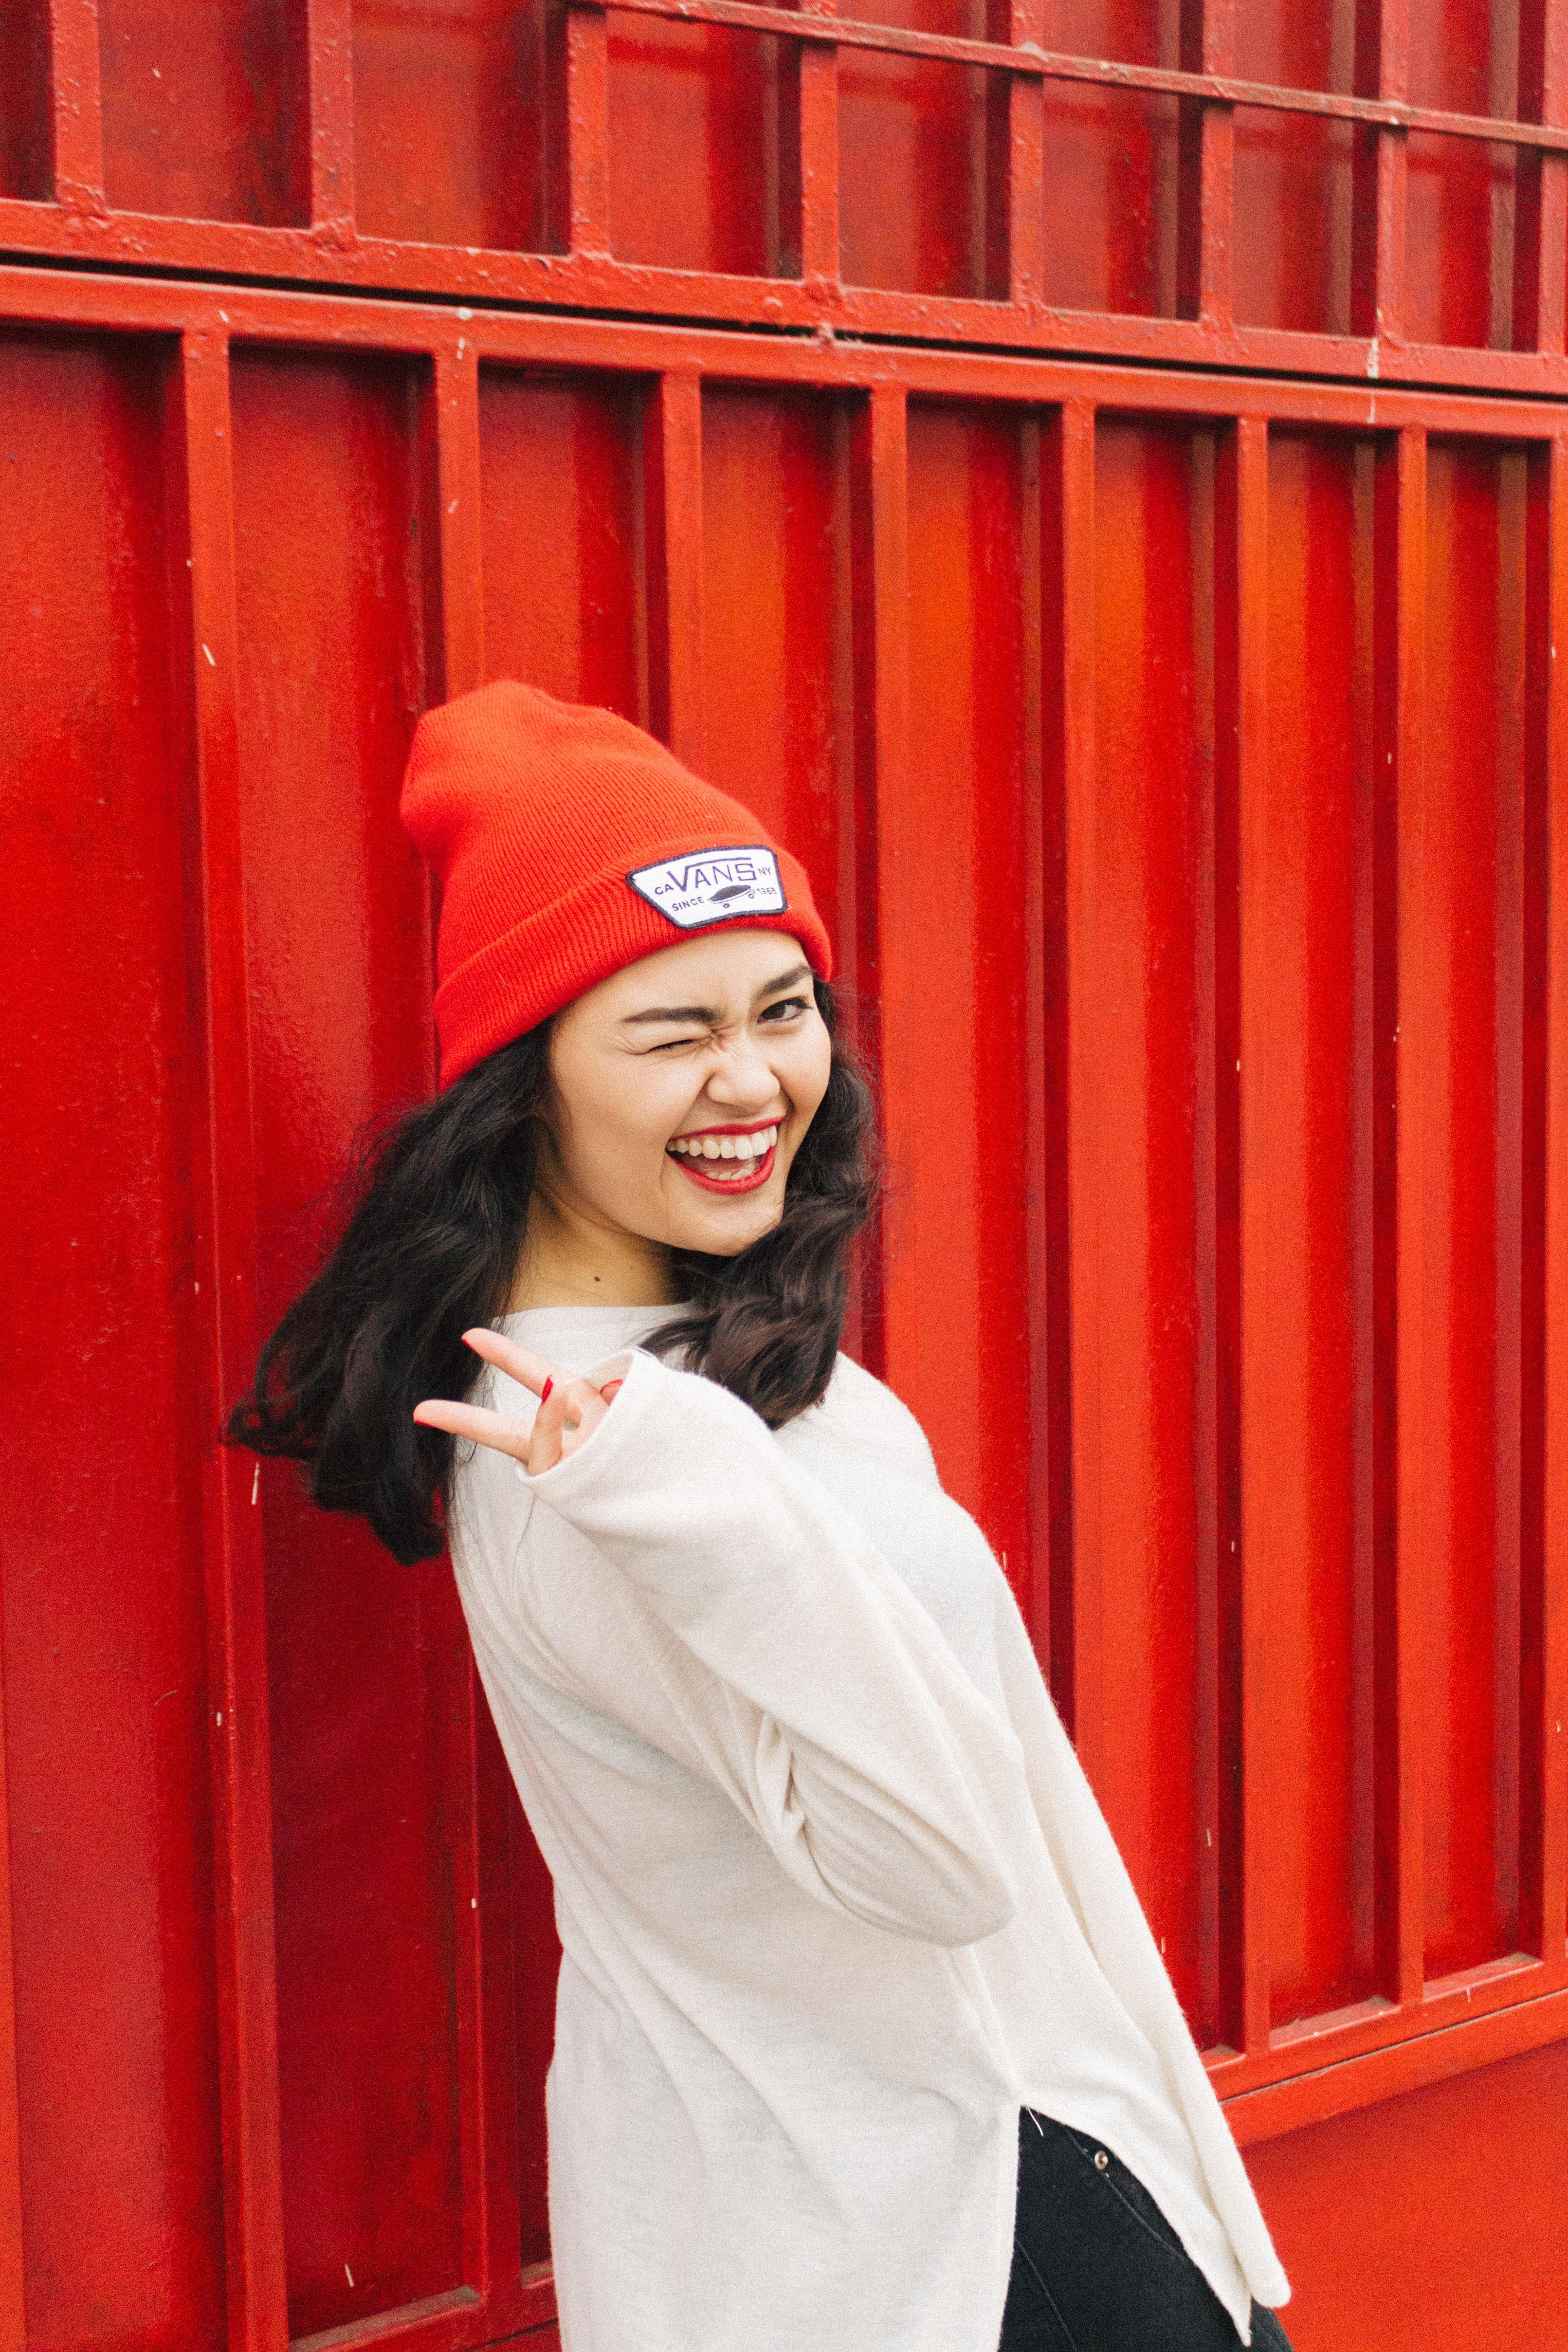 women's white long-sleeved shirt and red knitted cap